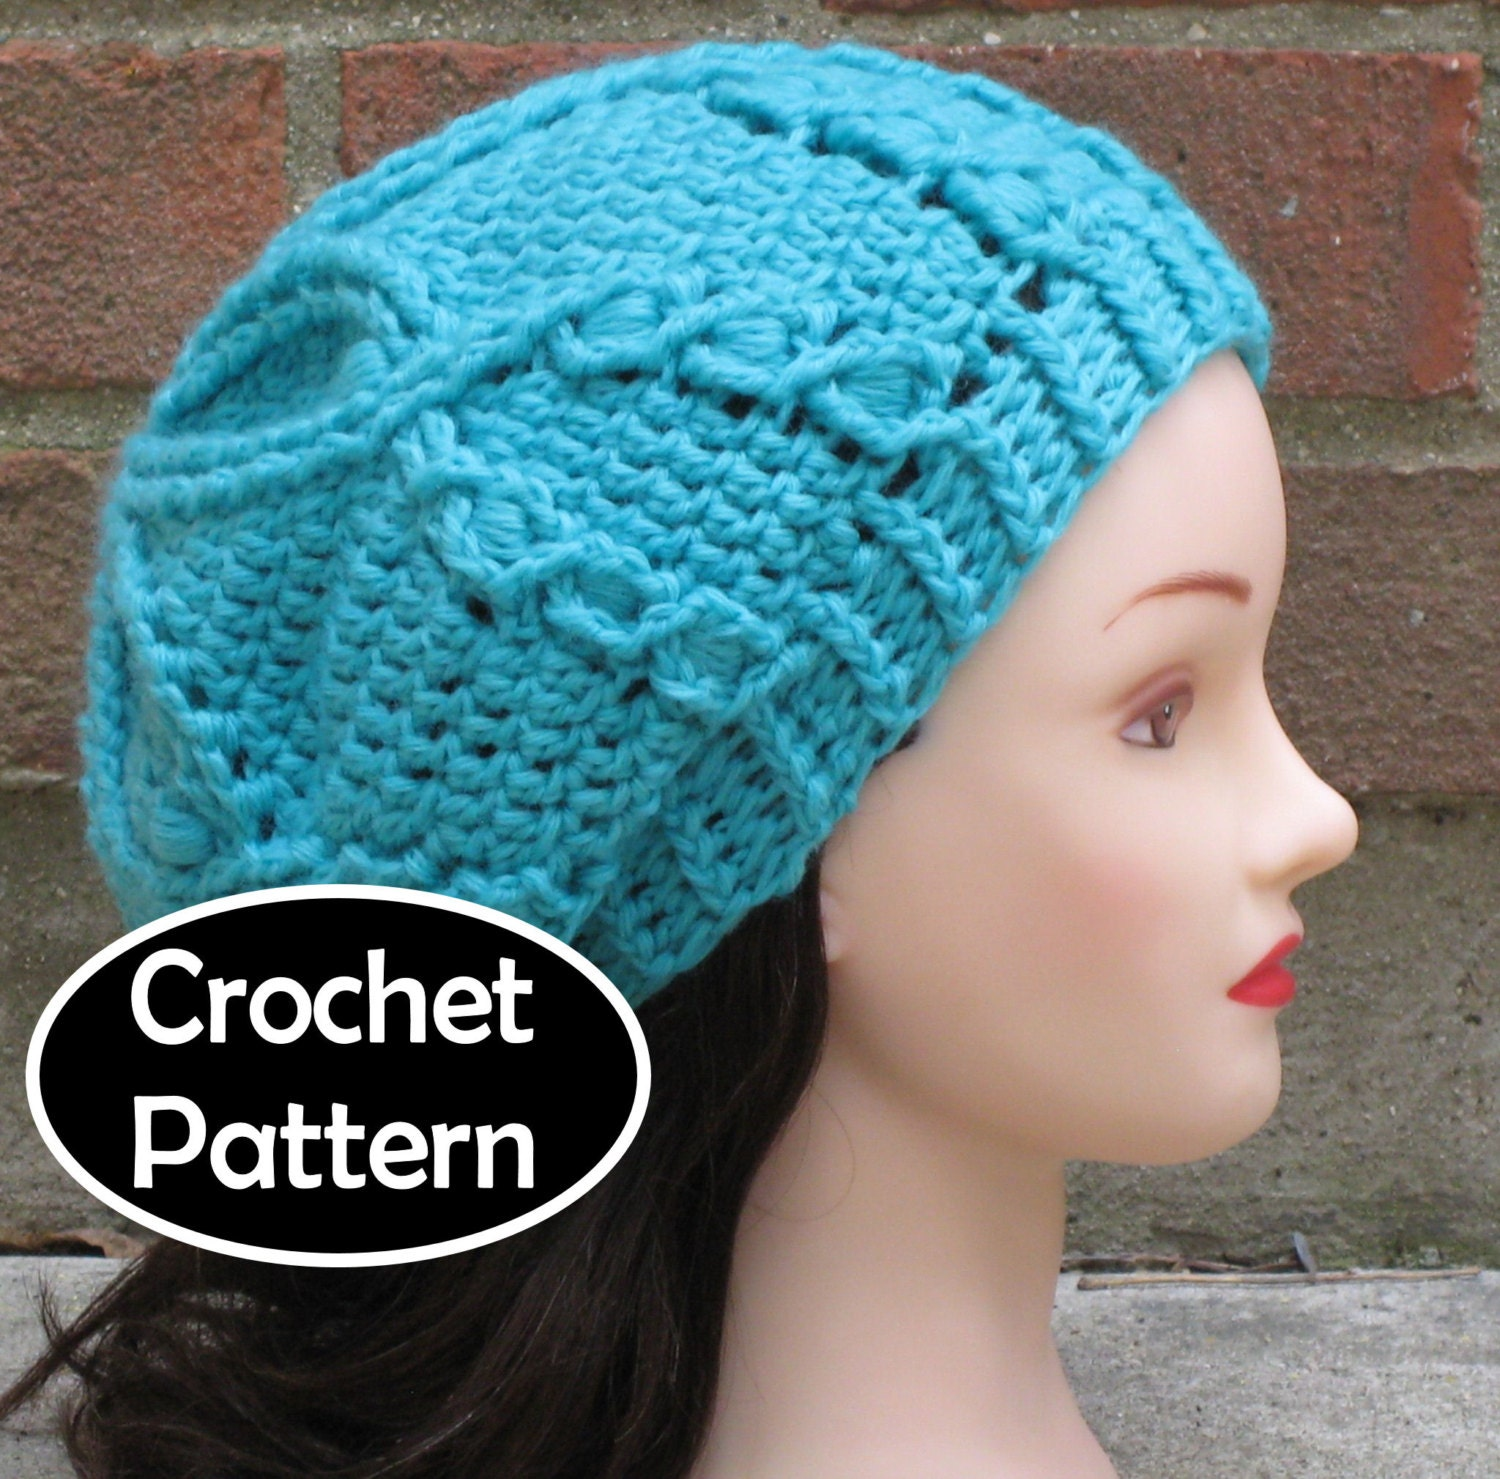 Crochet Hat Pattern Download : CROCHET HAT PATTERN Instant Download Pdf Waterlily Cabled